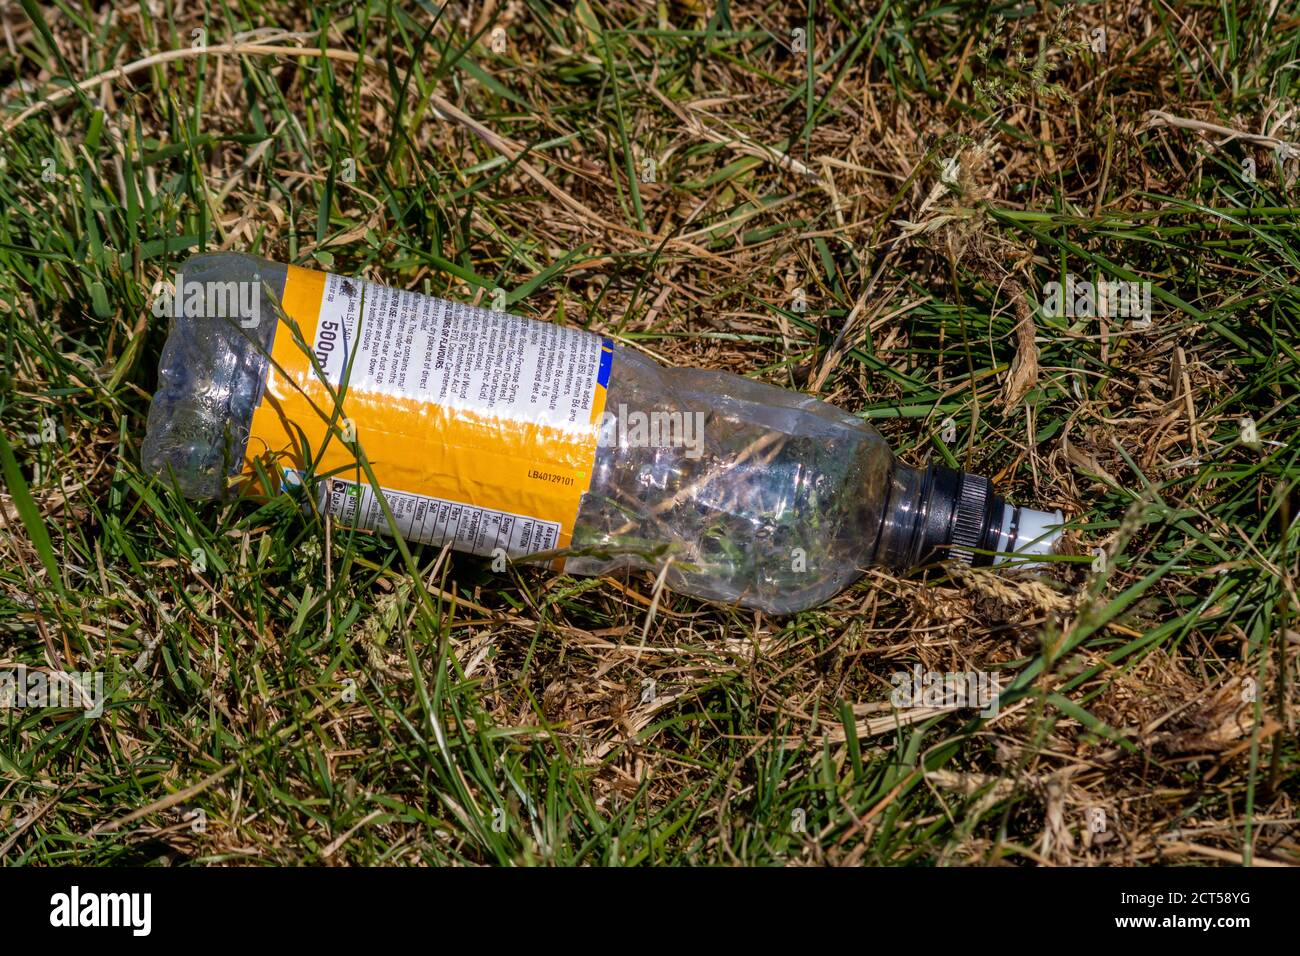 An empty plastic drink bottle with text on a yellow and white label, lying on some scrubby grass having been thrown away as litter Stock Photo